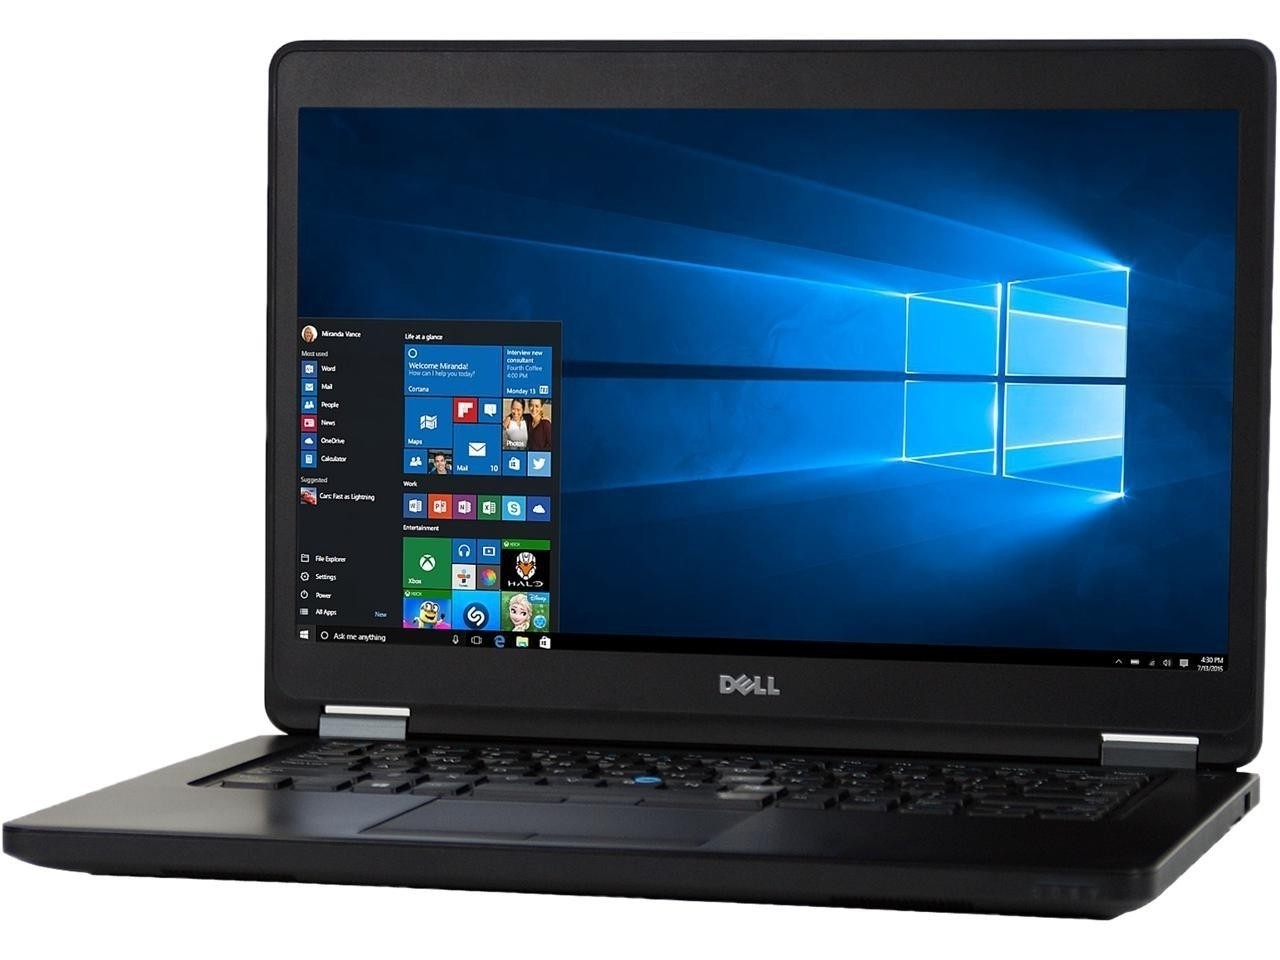 Refurbished laptops & desktops - REFURBISHED DELL LATITUDE E5450 (CORE I5 4TH GEN/4GB/500GB/WEBCAM/14'' TOUCH/DOS)